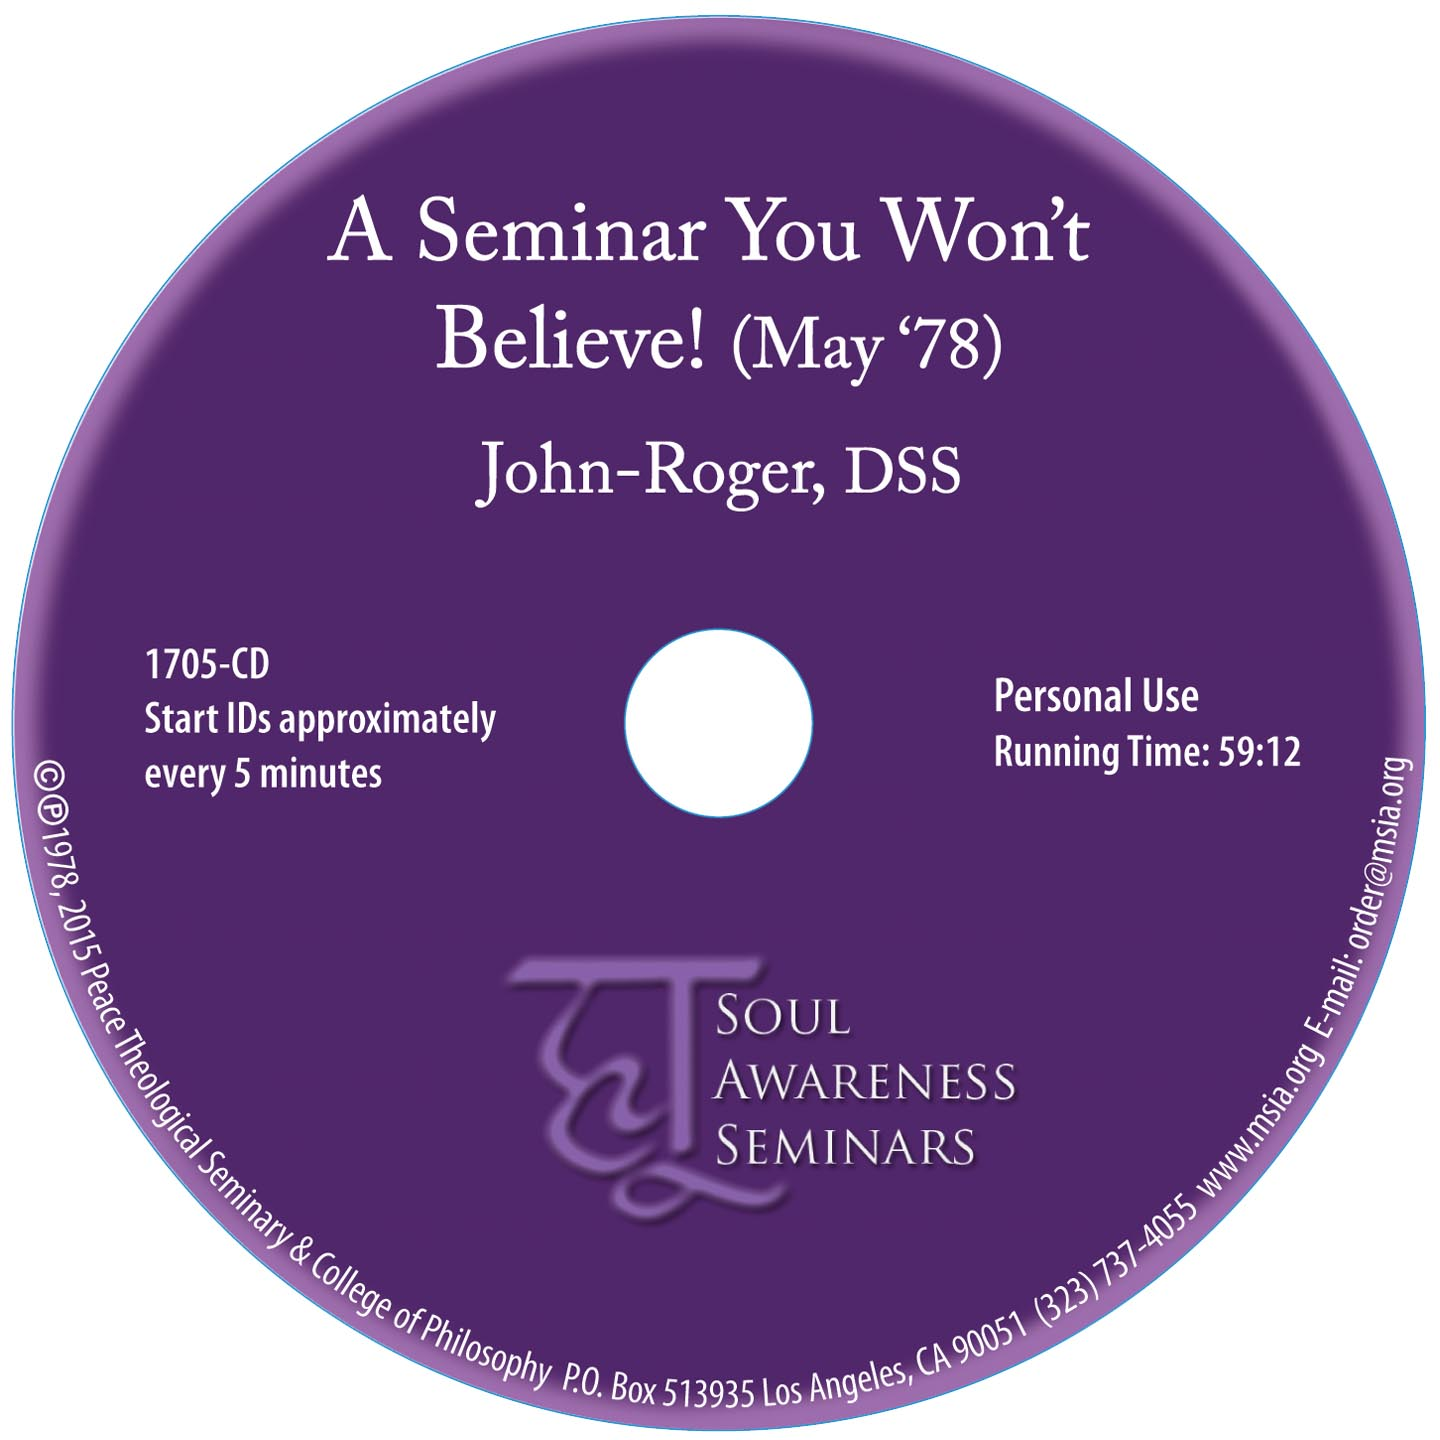 A Seminar You Won't Believe! CD